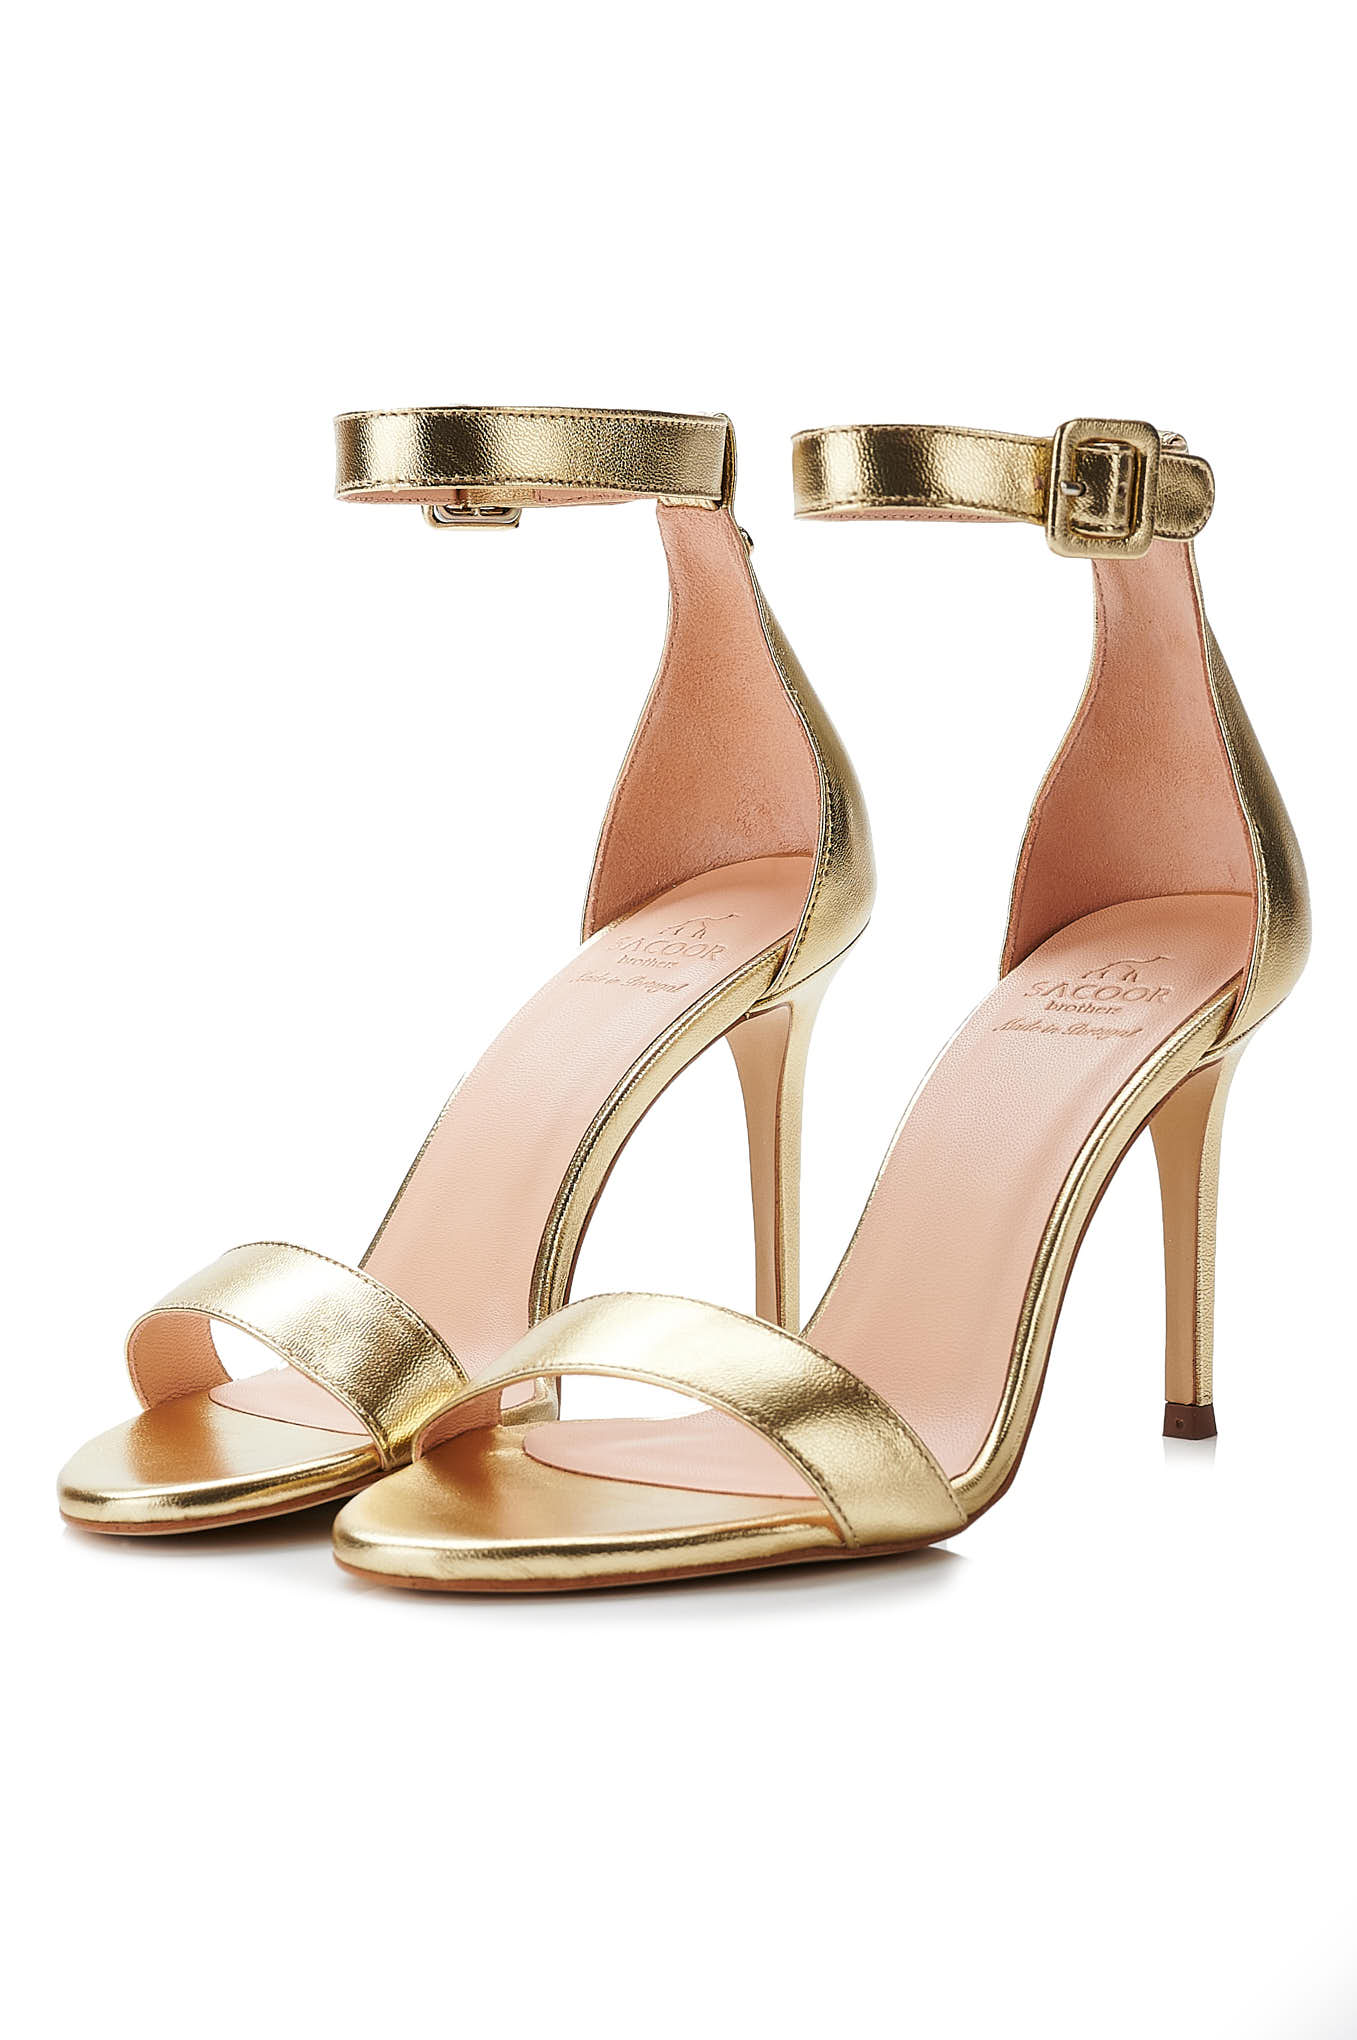 Sandals Gold Formal Woman